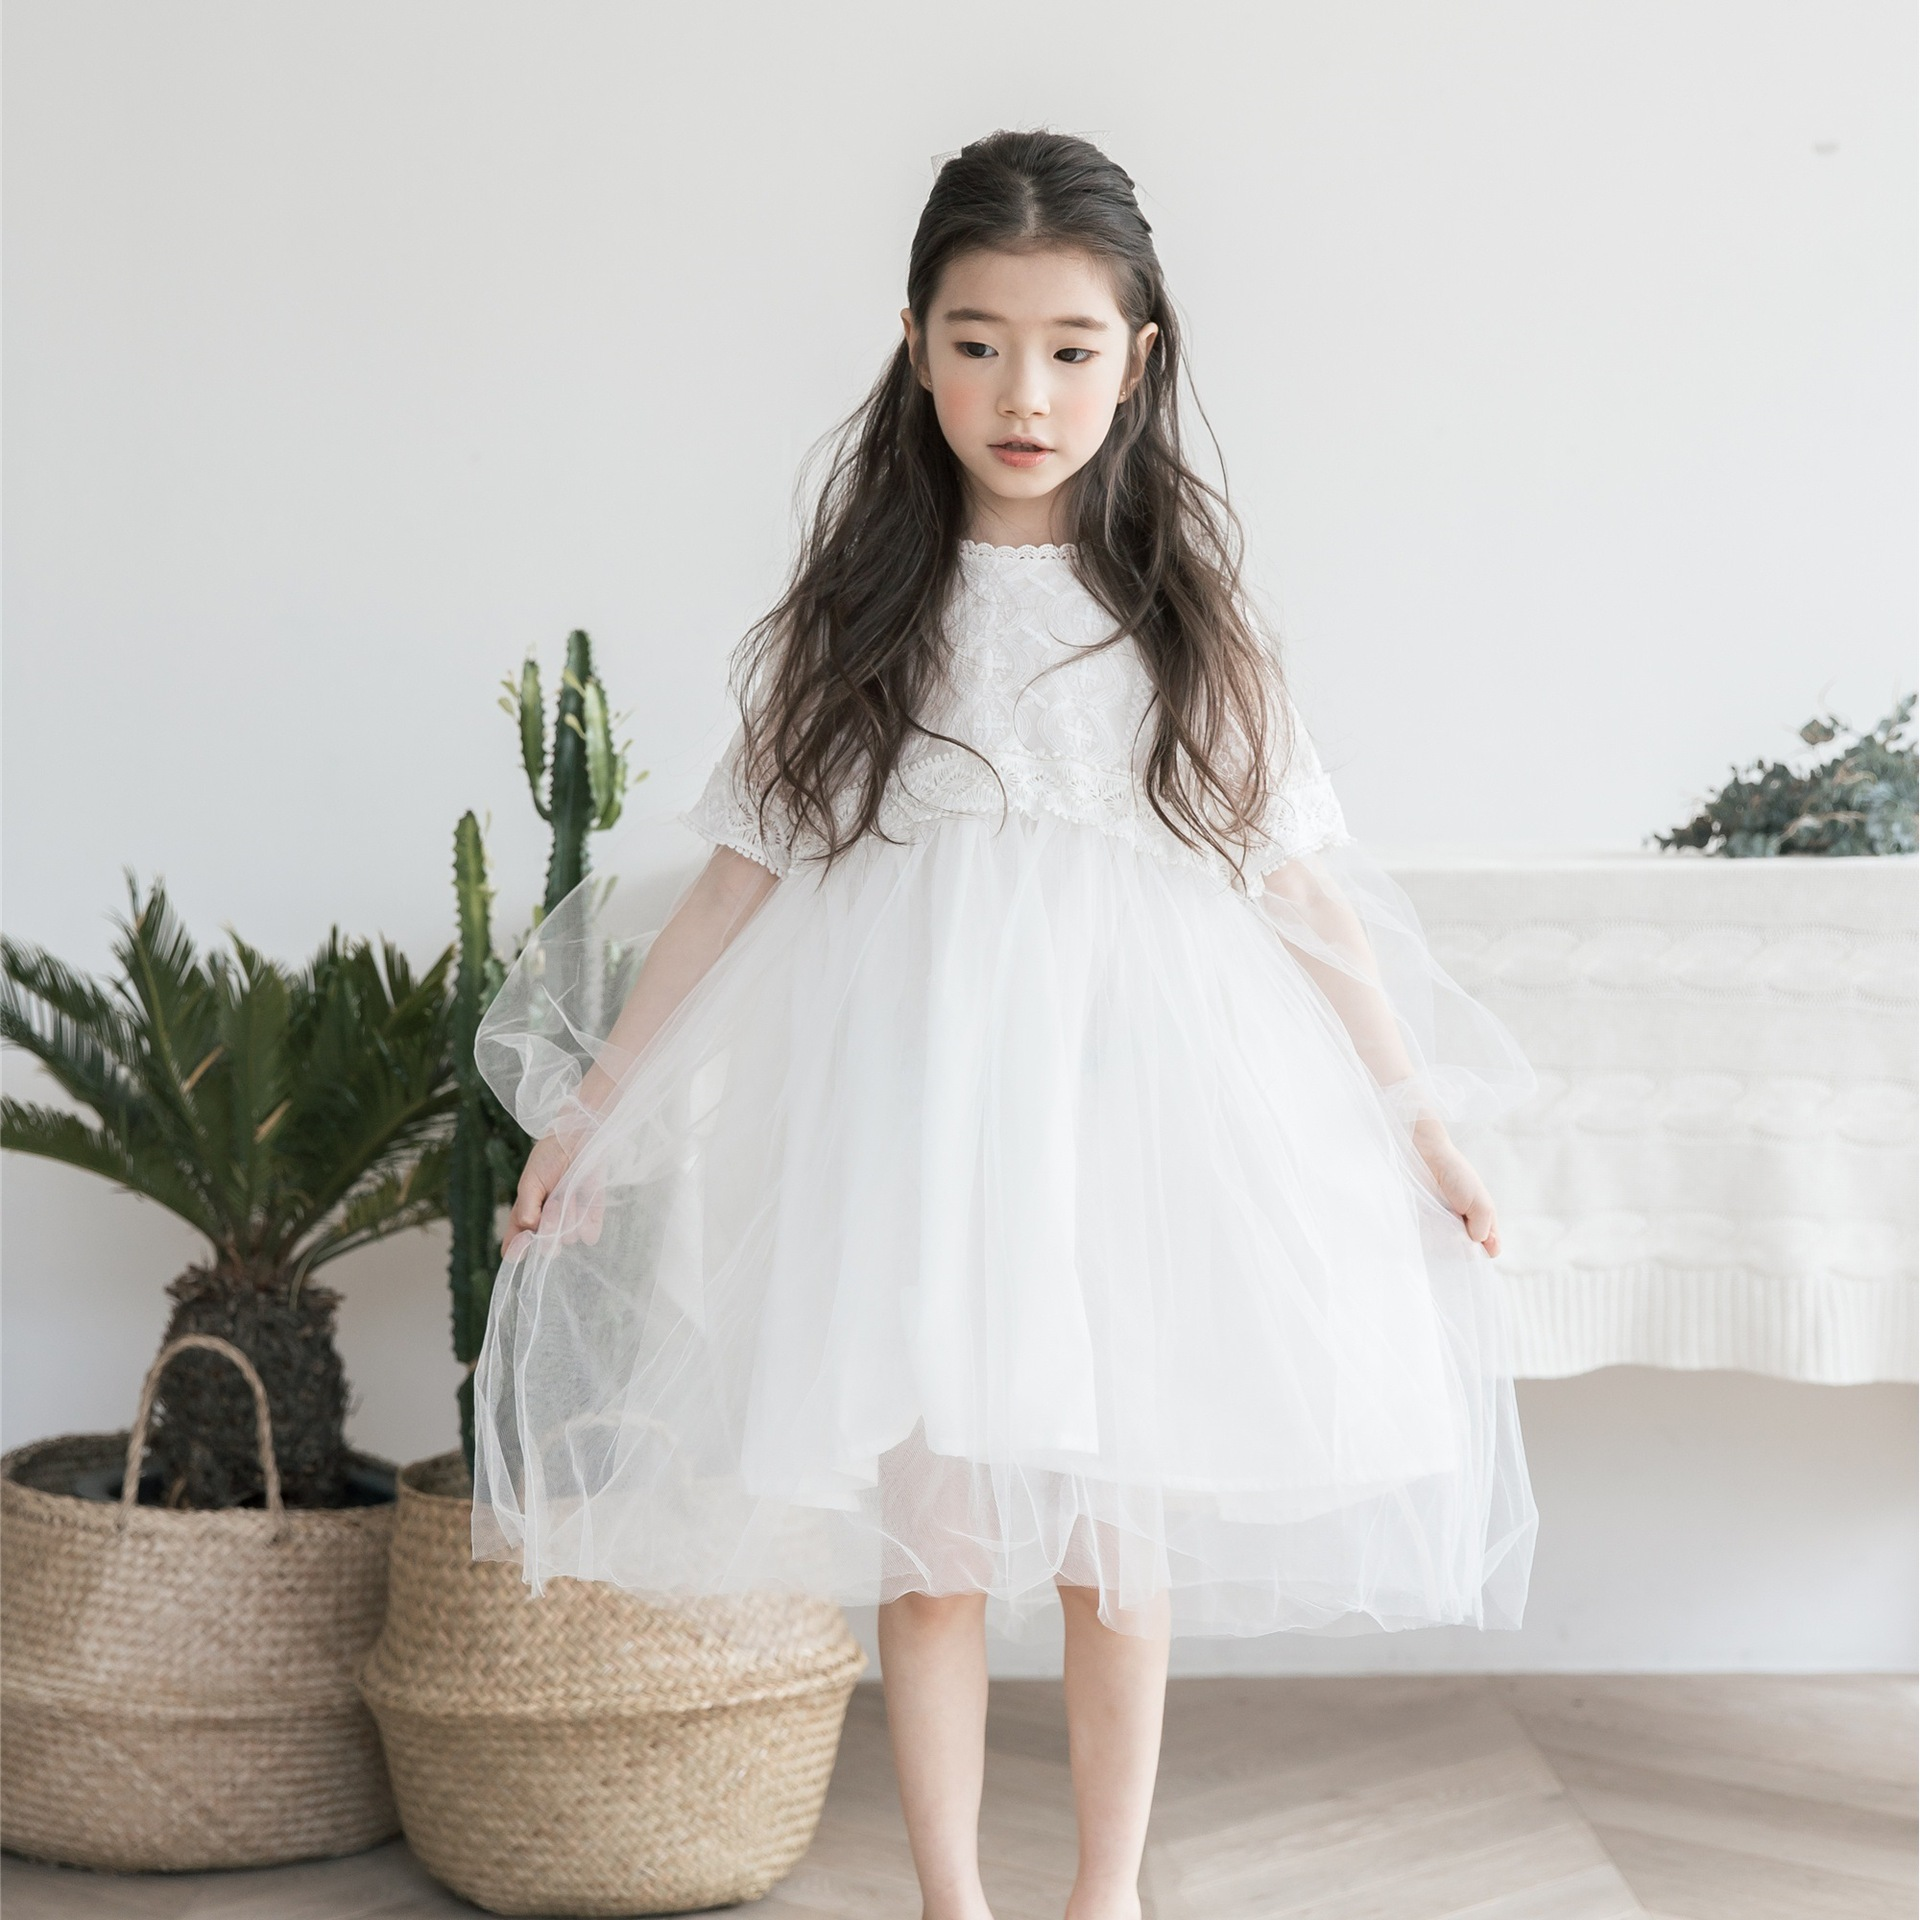 New Dresses For Girls Cute Lace Solid Long Lantern Sleeve Children Dress O-Neck Ball Grown Party Princess Kids Clothes CC856 2018 summer girls teens party dress petal sleeve o neck children kids dress for girl 12 years old lace net yarn princess dresses